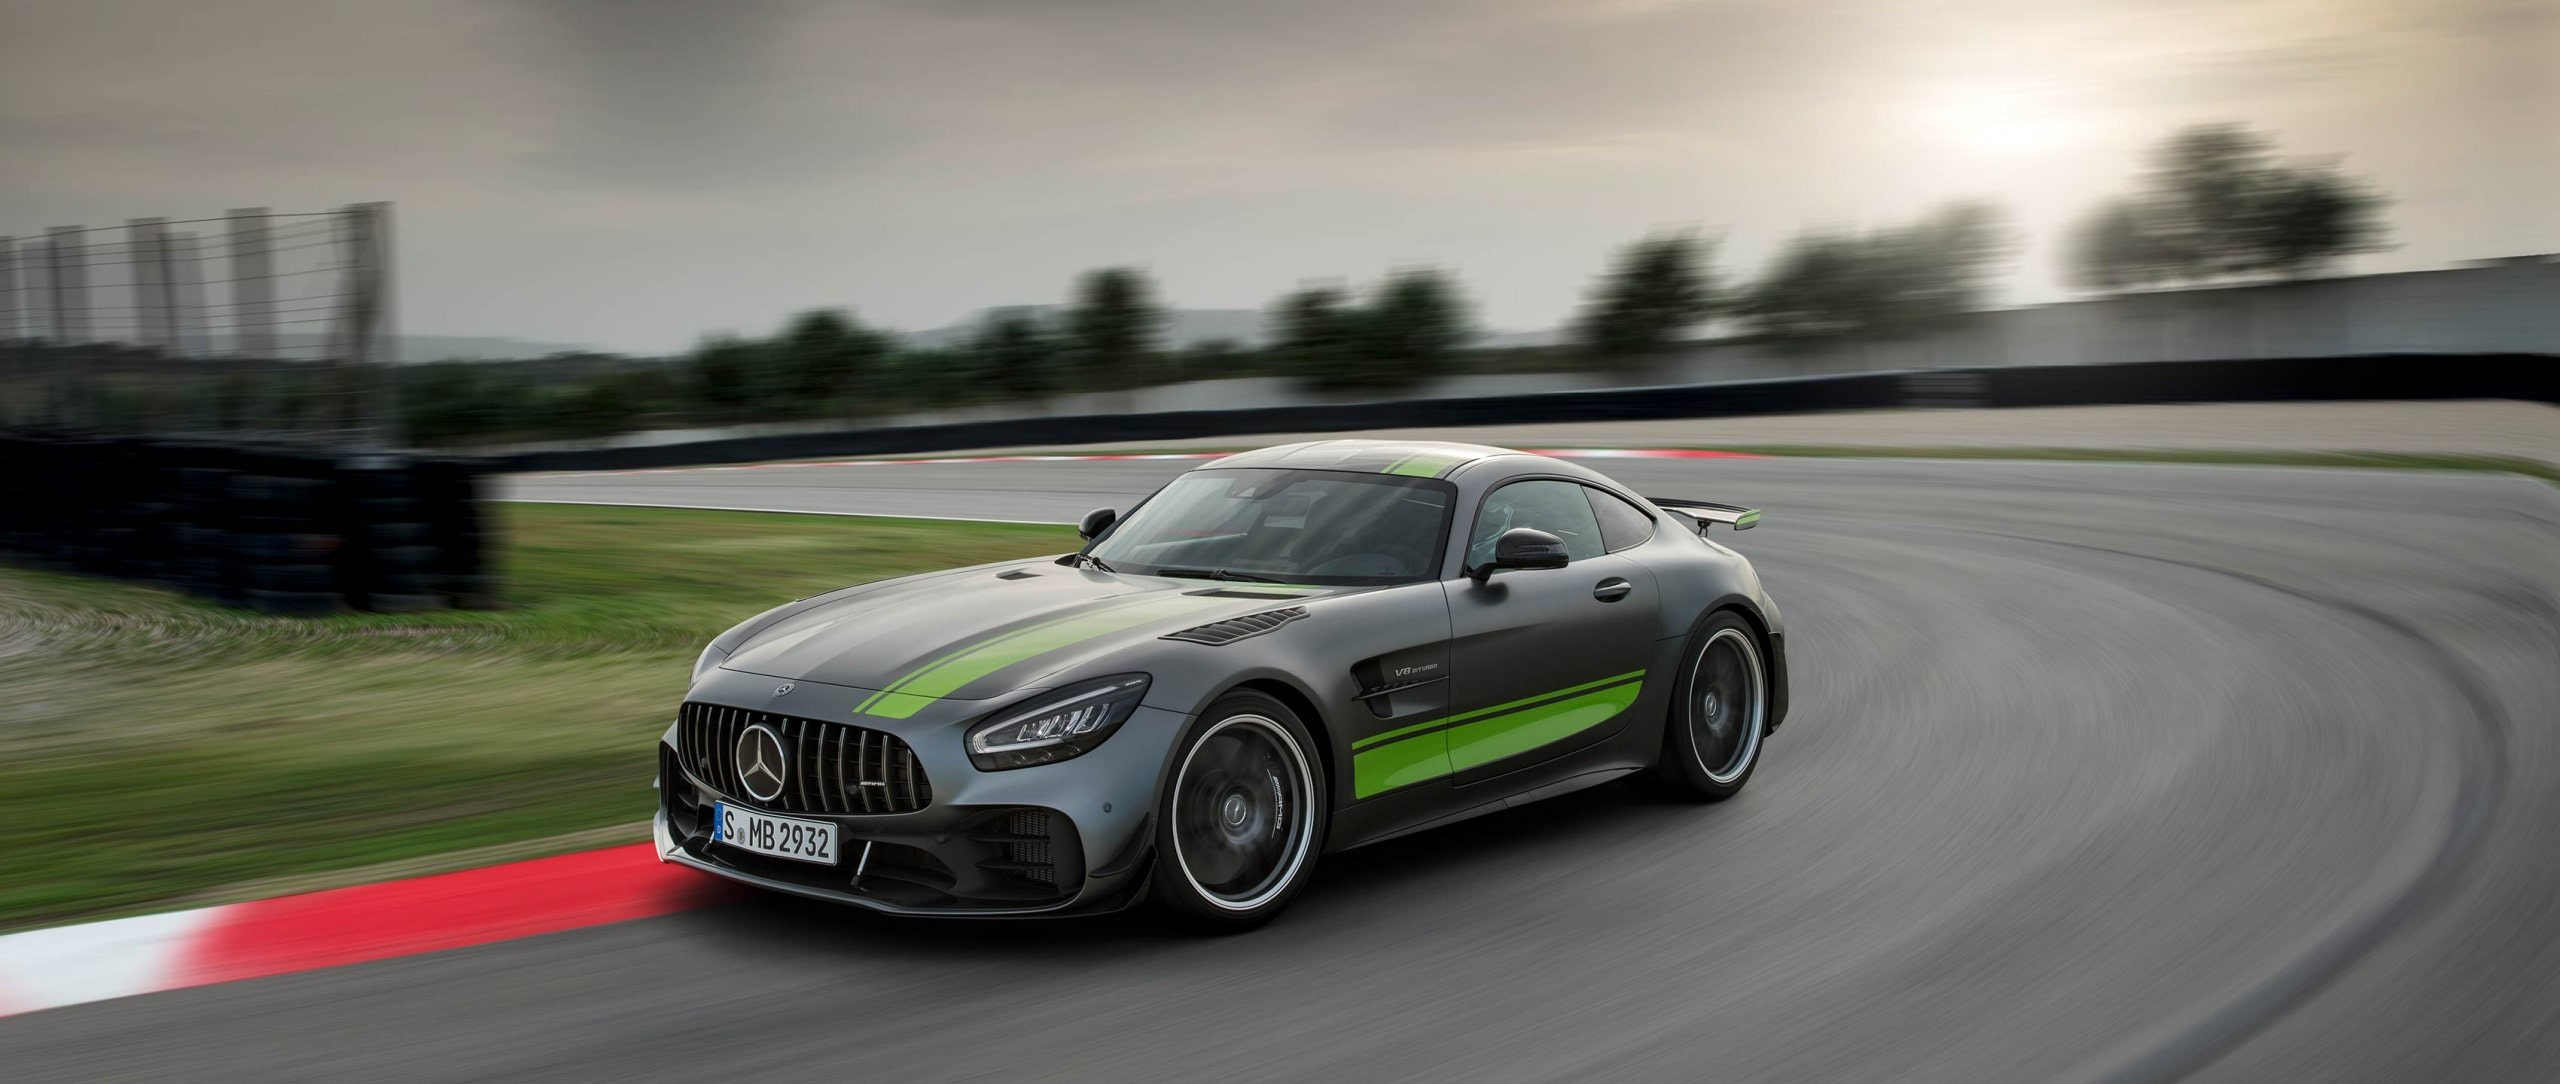 2019 Mercedes-AMG GT R PRO (C 190) in Selenite Grey magno in the Green Hell of the Nürburgring Nordschleife.